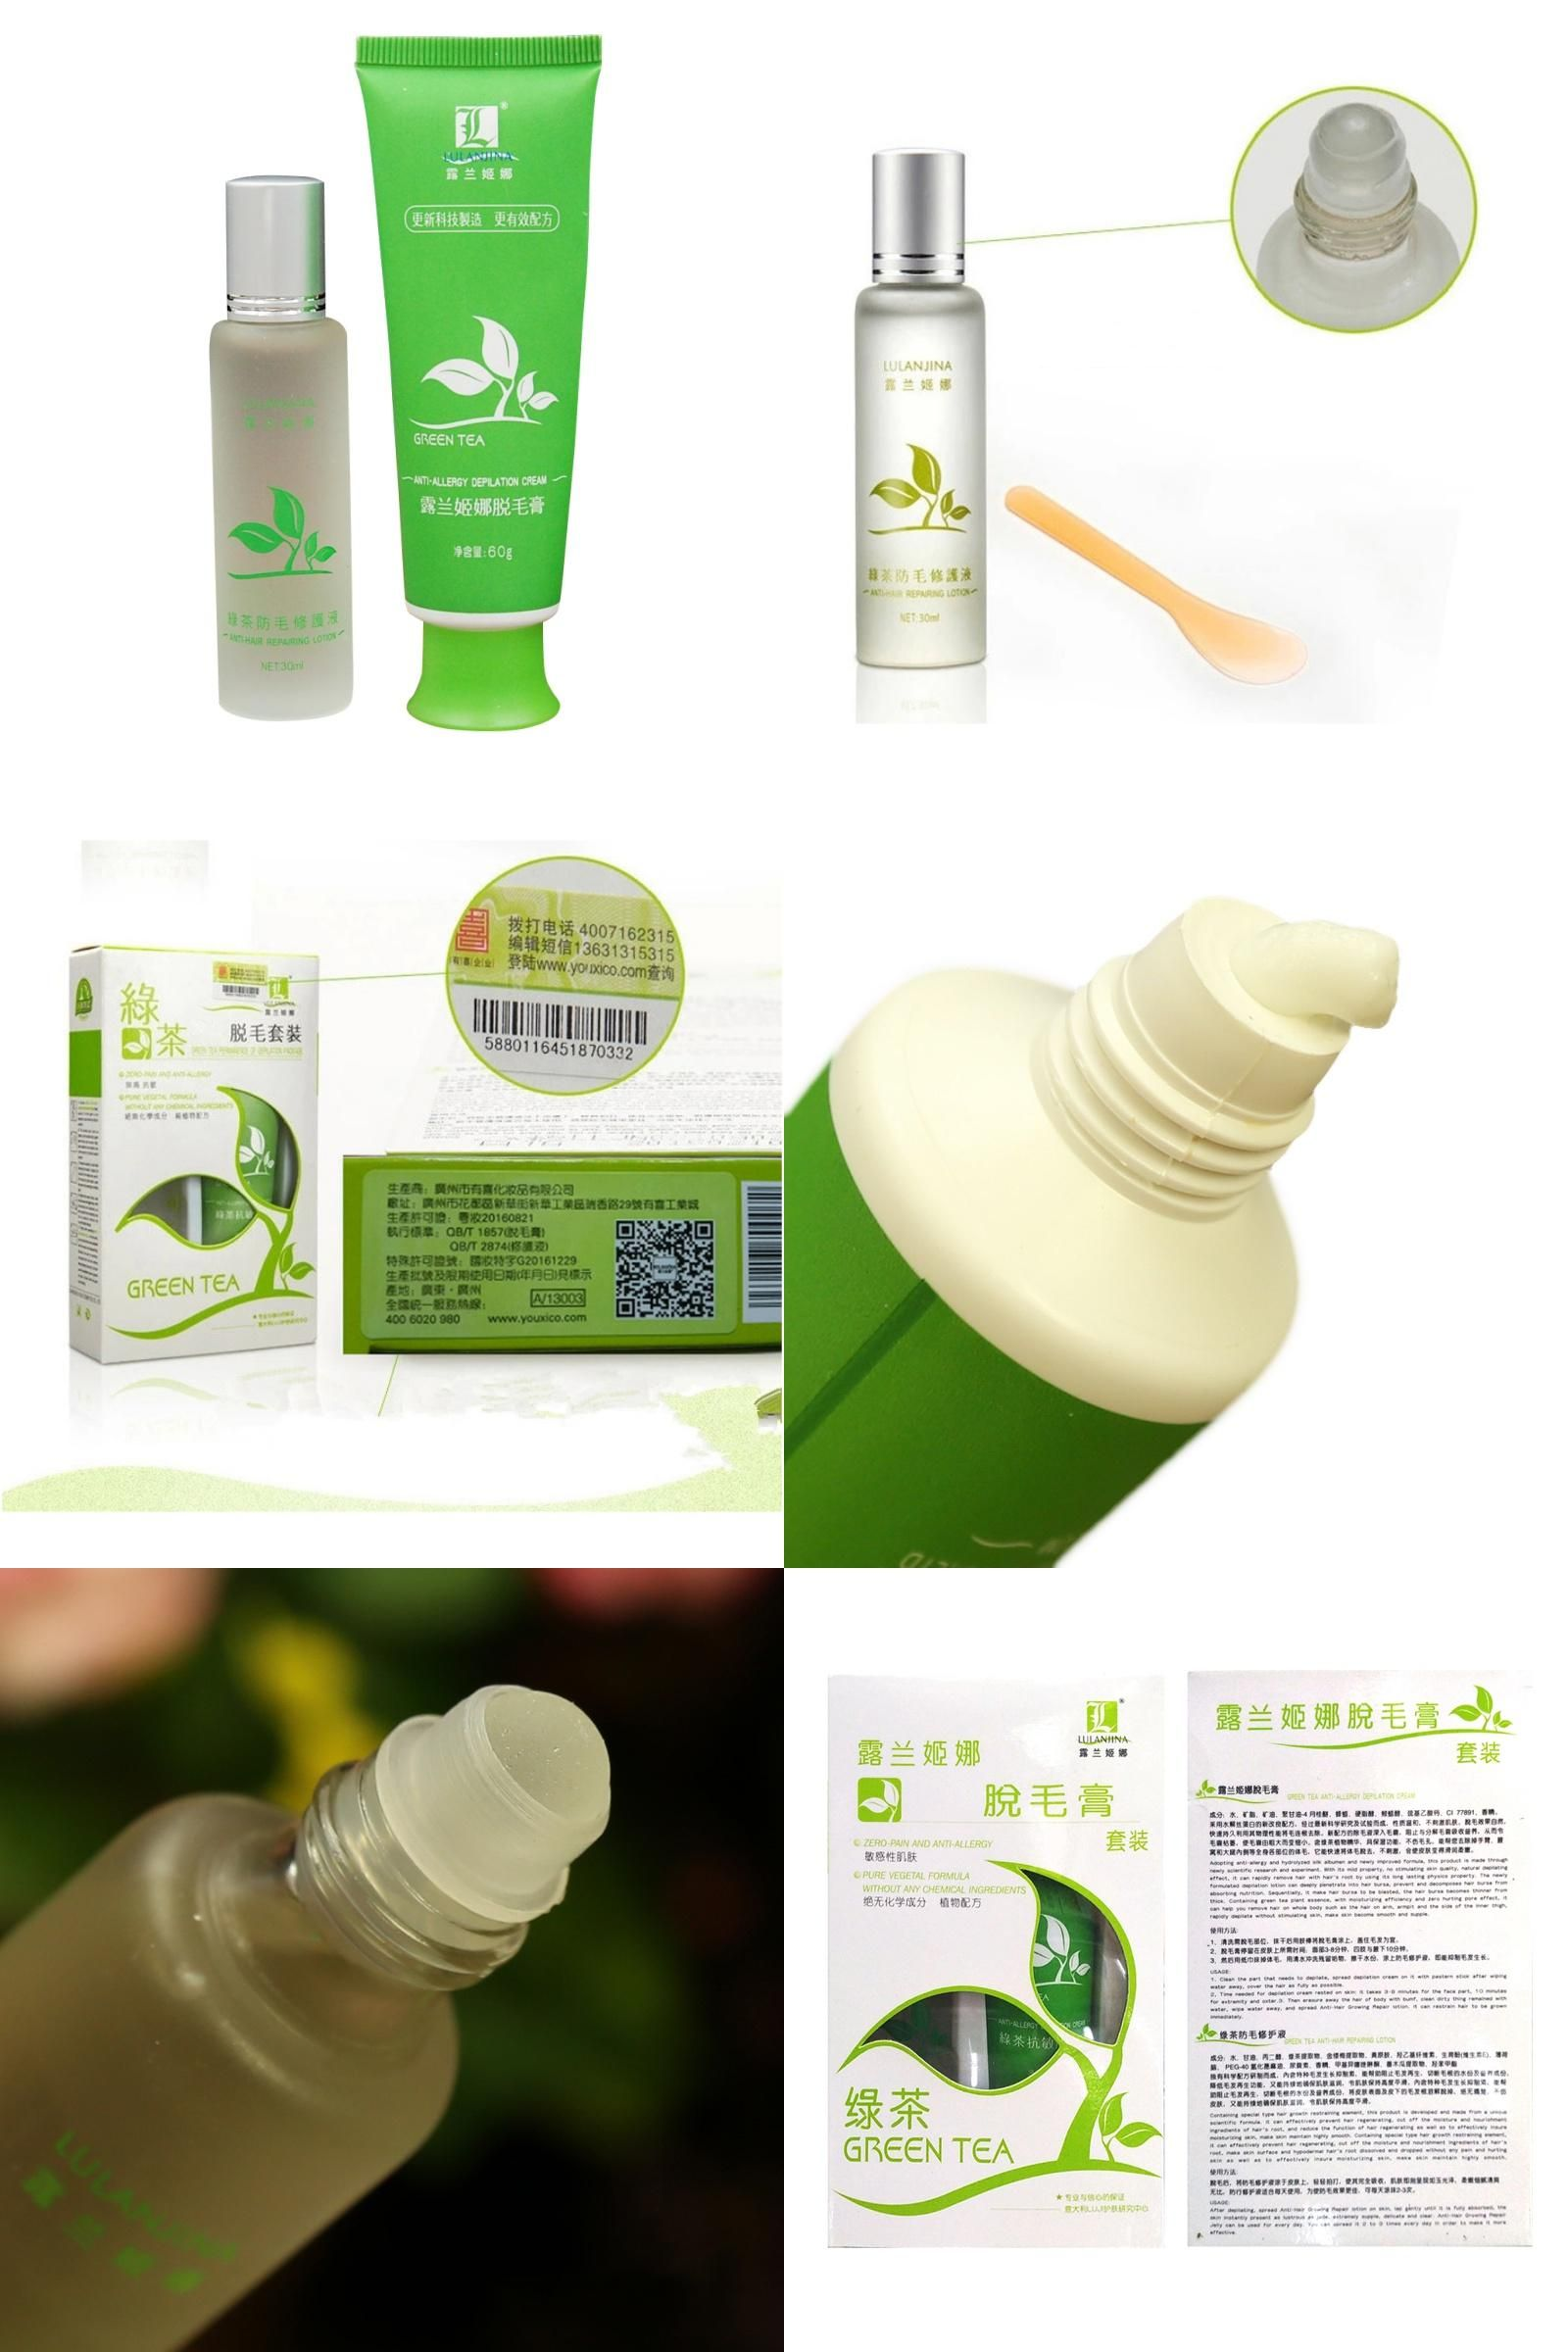 Visit To Buy New Green Tea Fast Permanent Hair Removal Cream Body Hair Removal For Women And Men Facia Hair Removal Permanent Hair Removal Cream Hair Removal